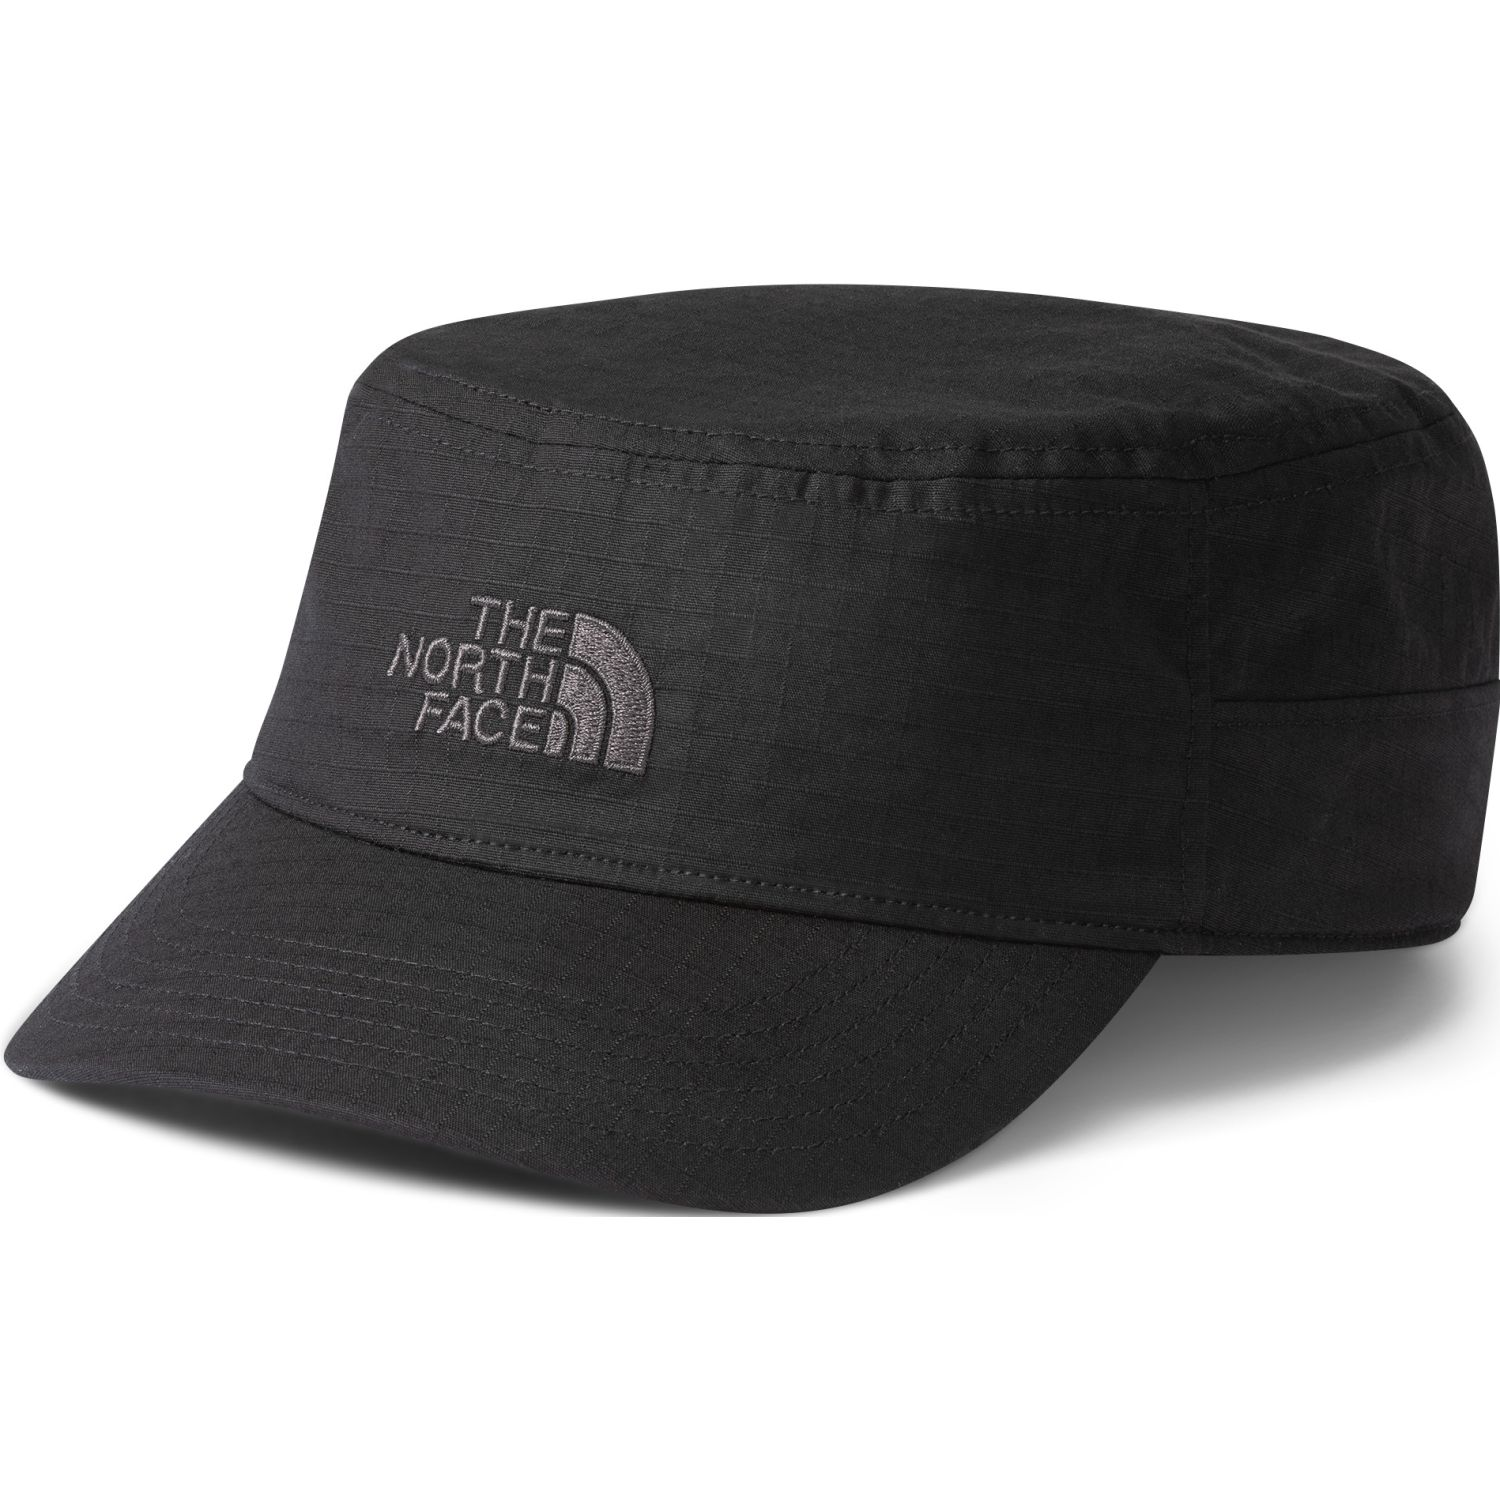 The North Face logo military hat Negro Chullos y Gorros